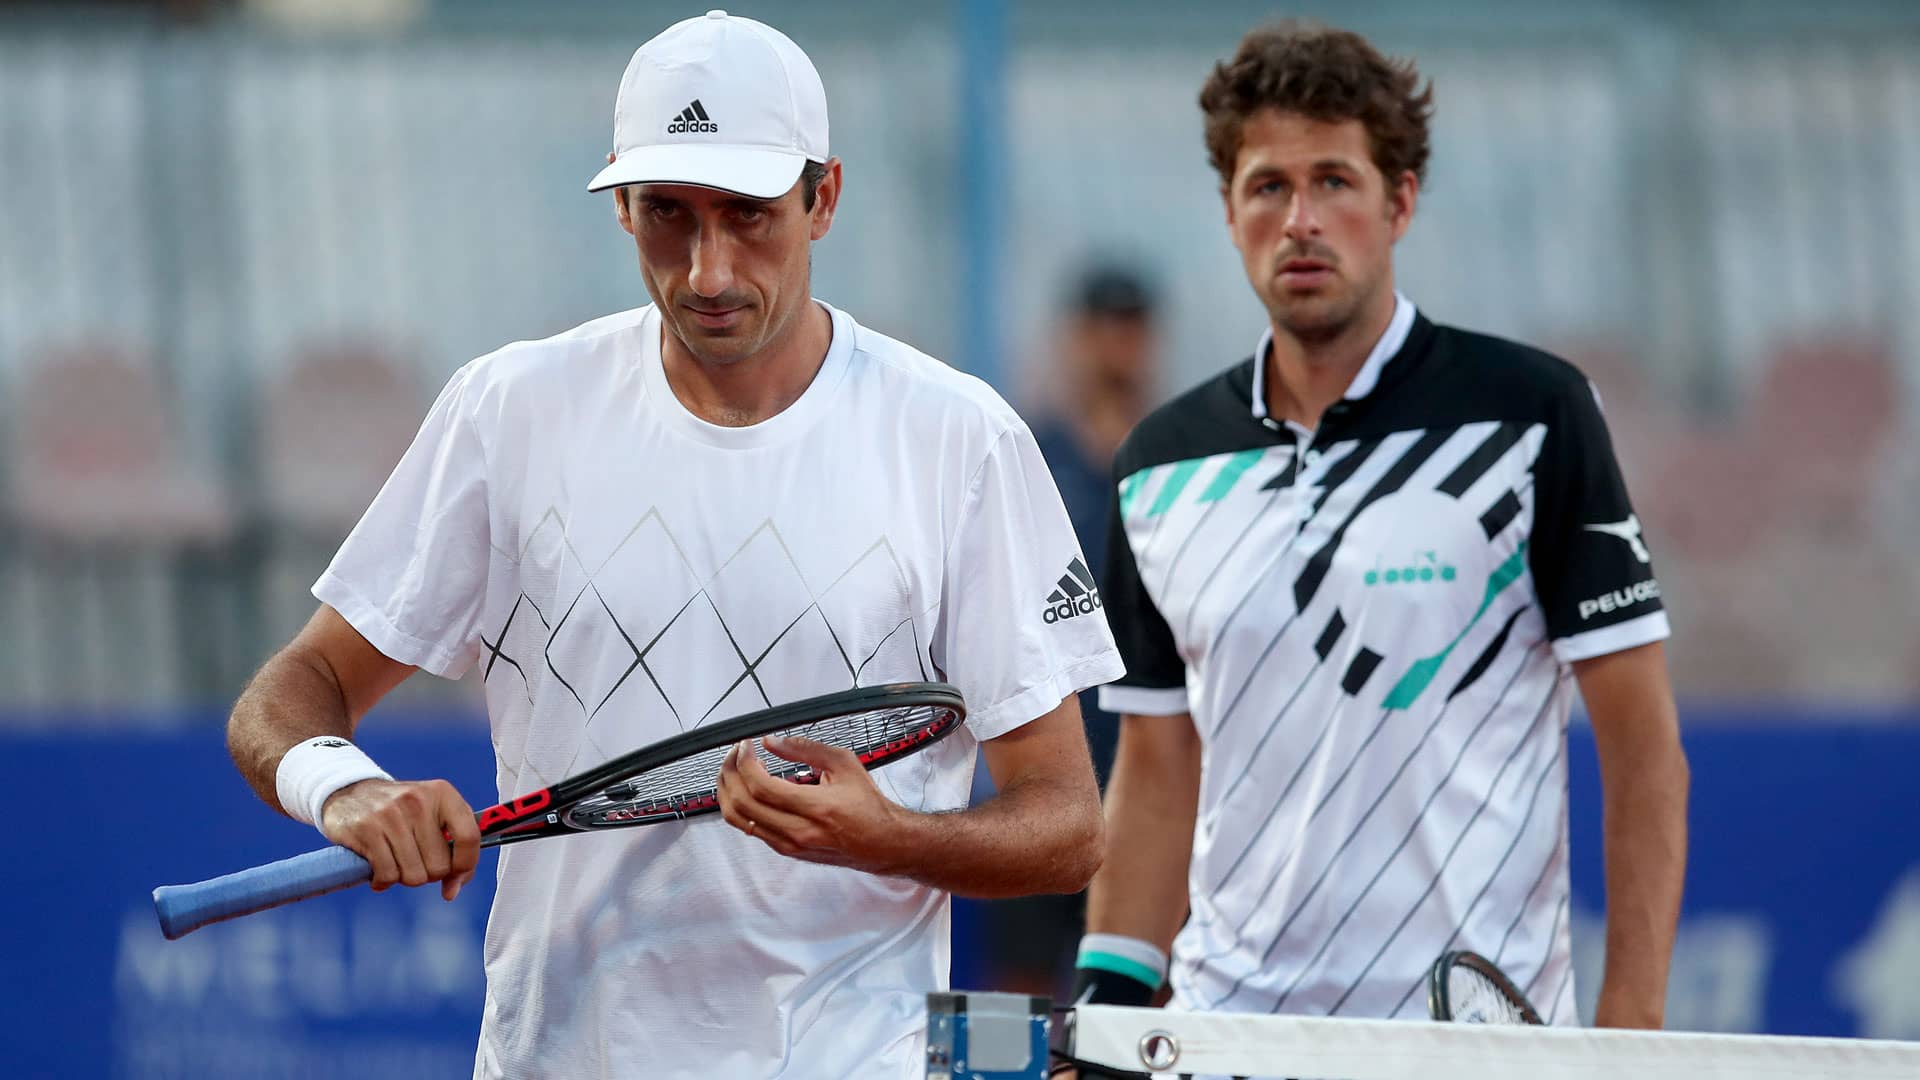 Philipp Oswald and Robin Haase at Umag 2019